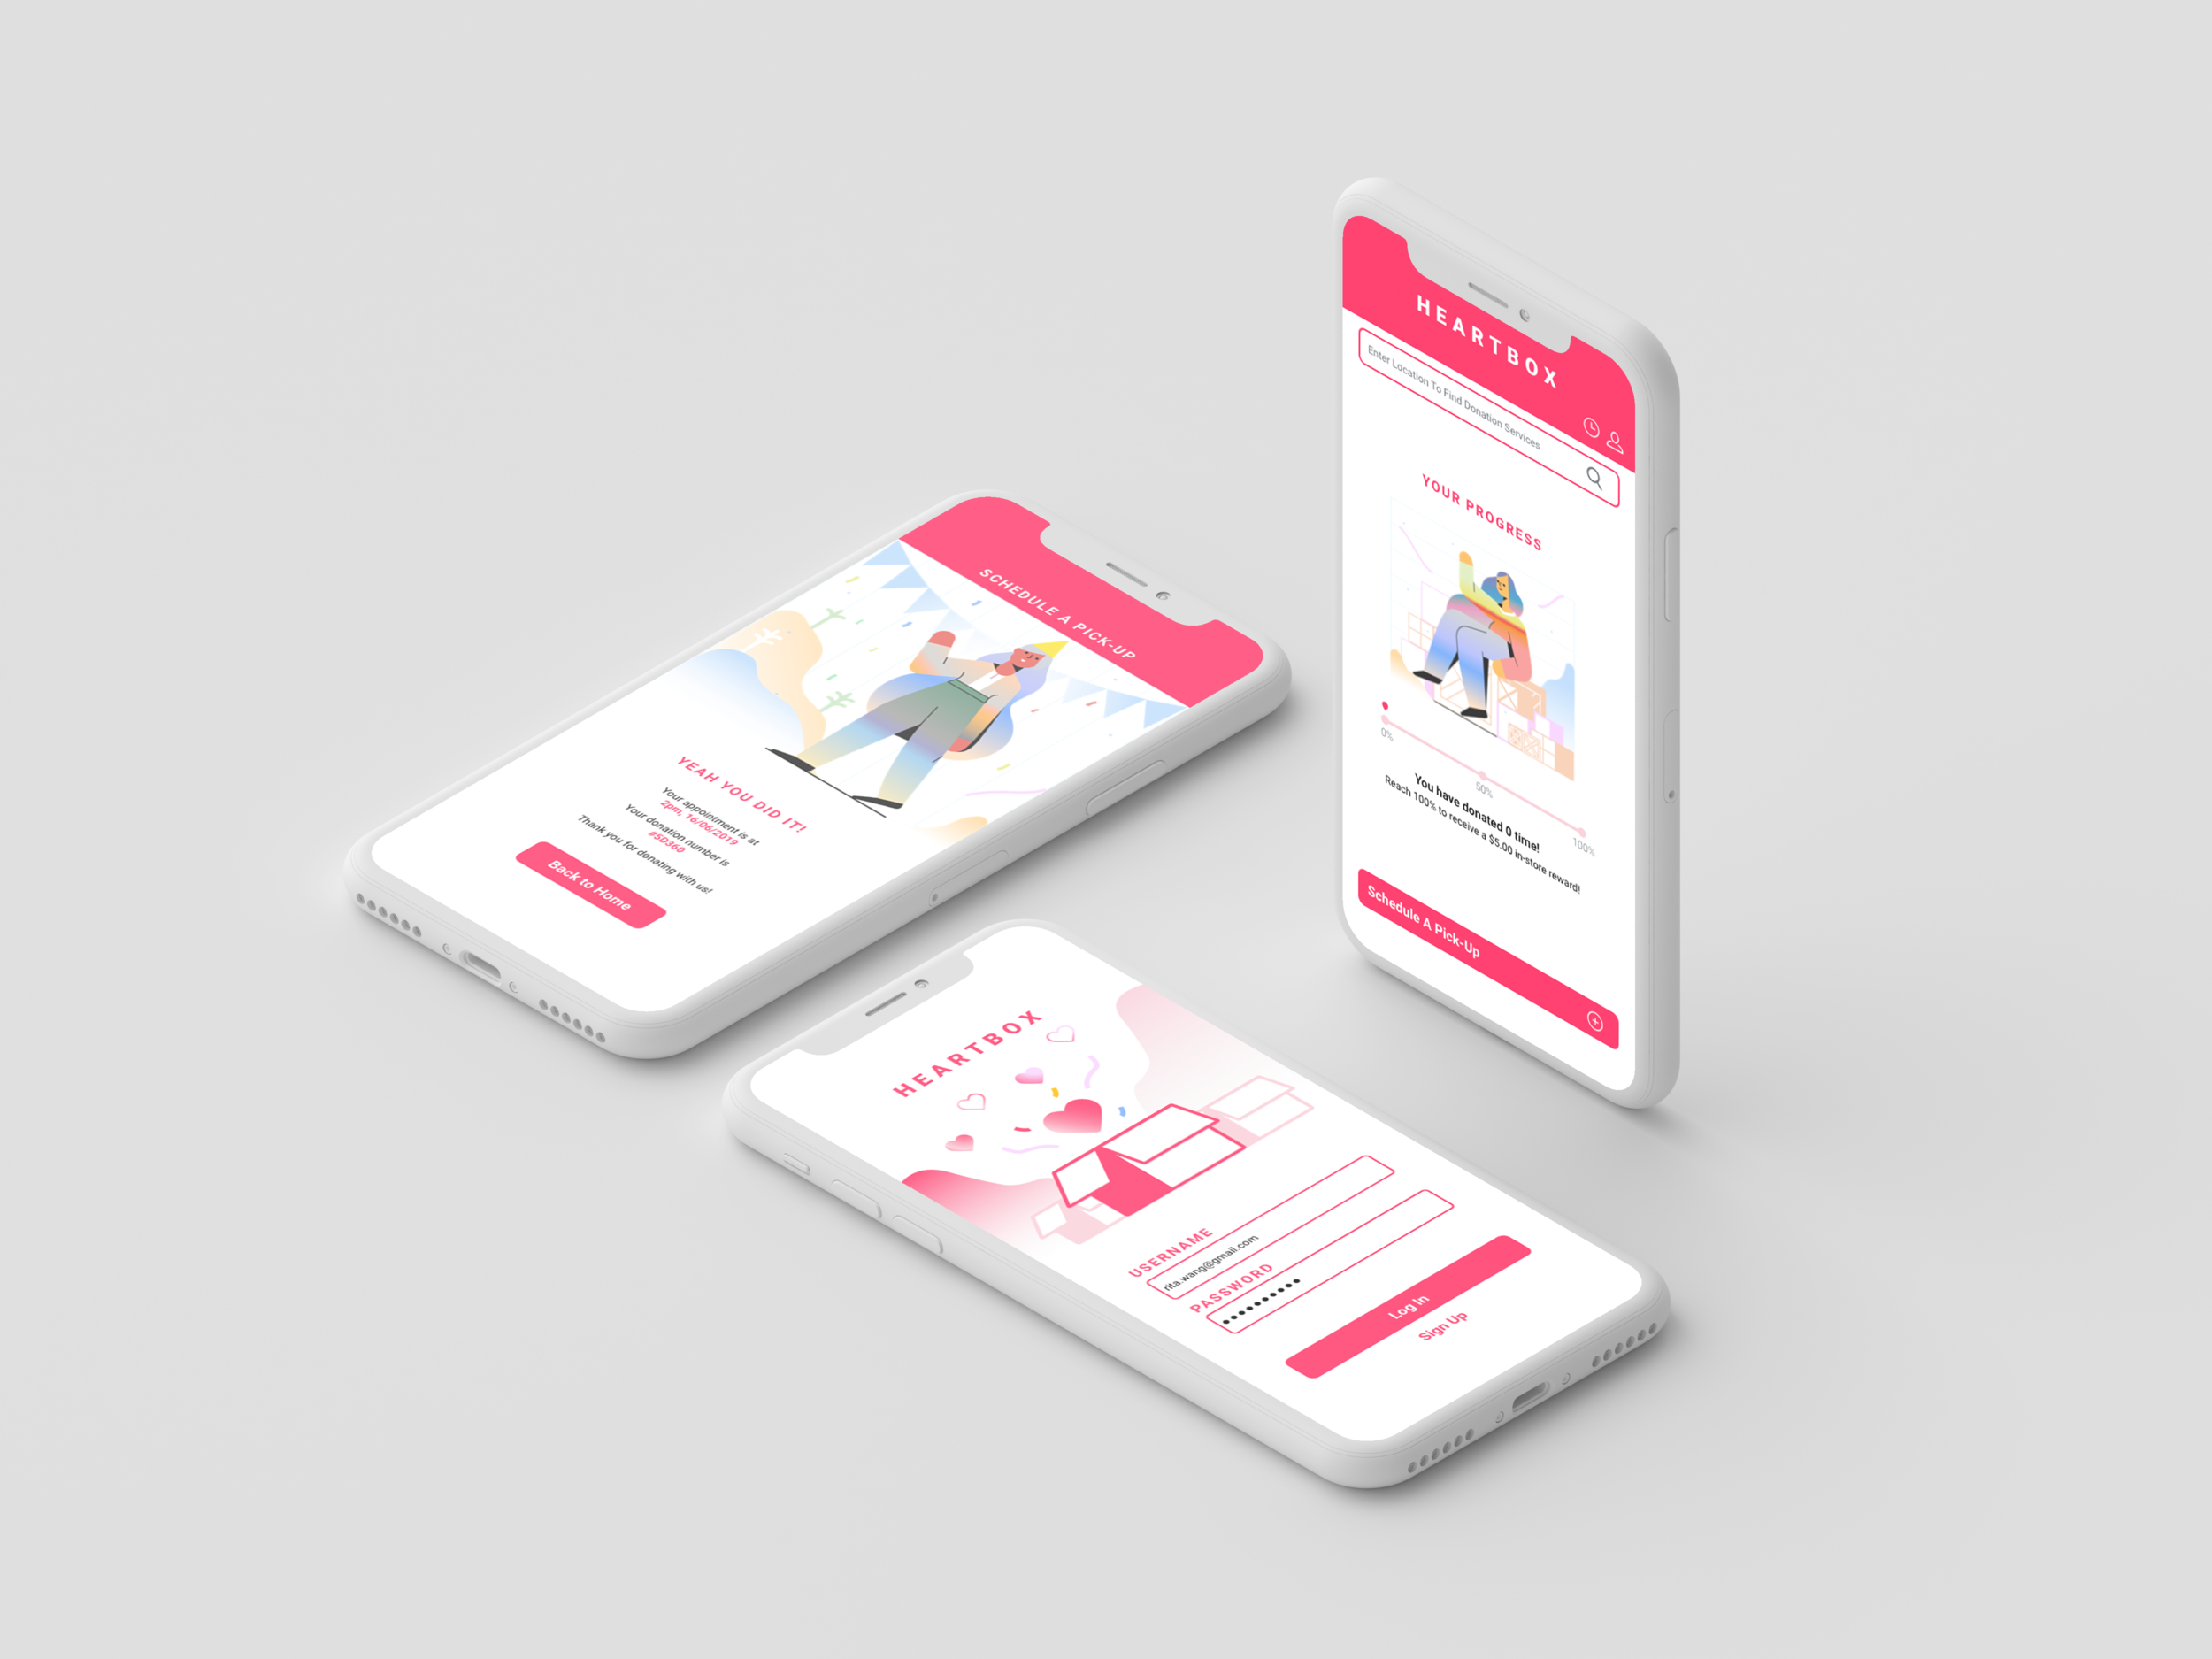 Heartbox - UX | UI DesignA mobile platform that helps to make clothes donation easier.